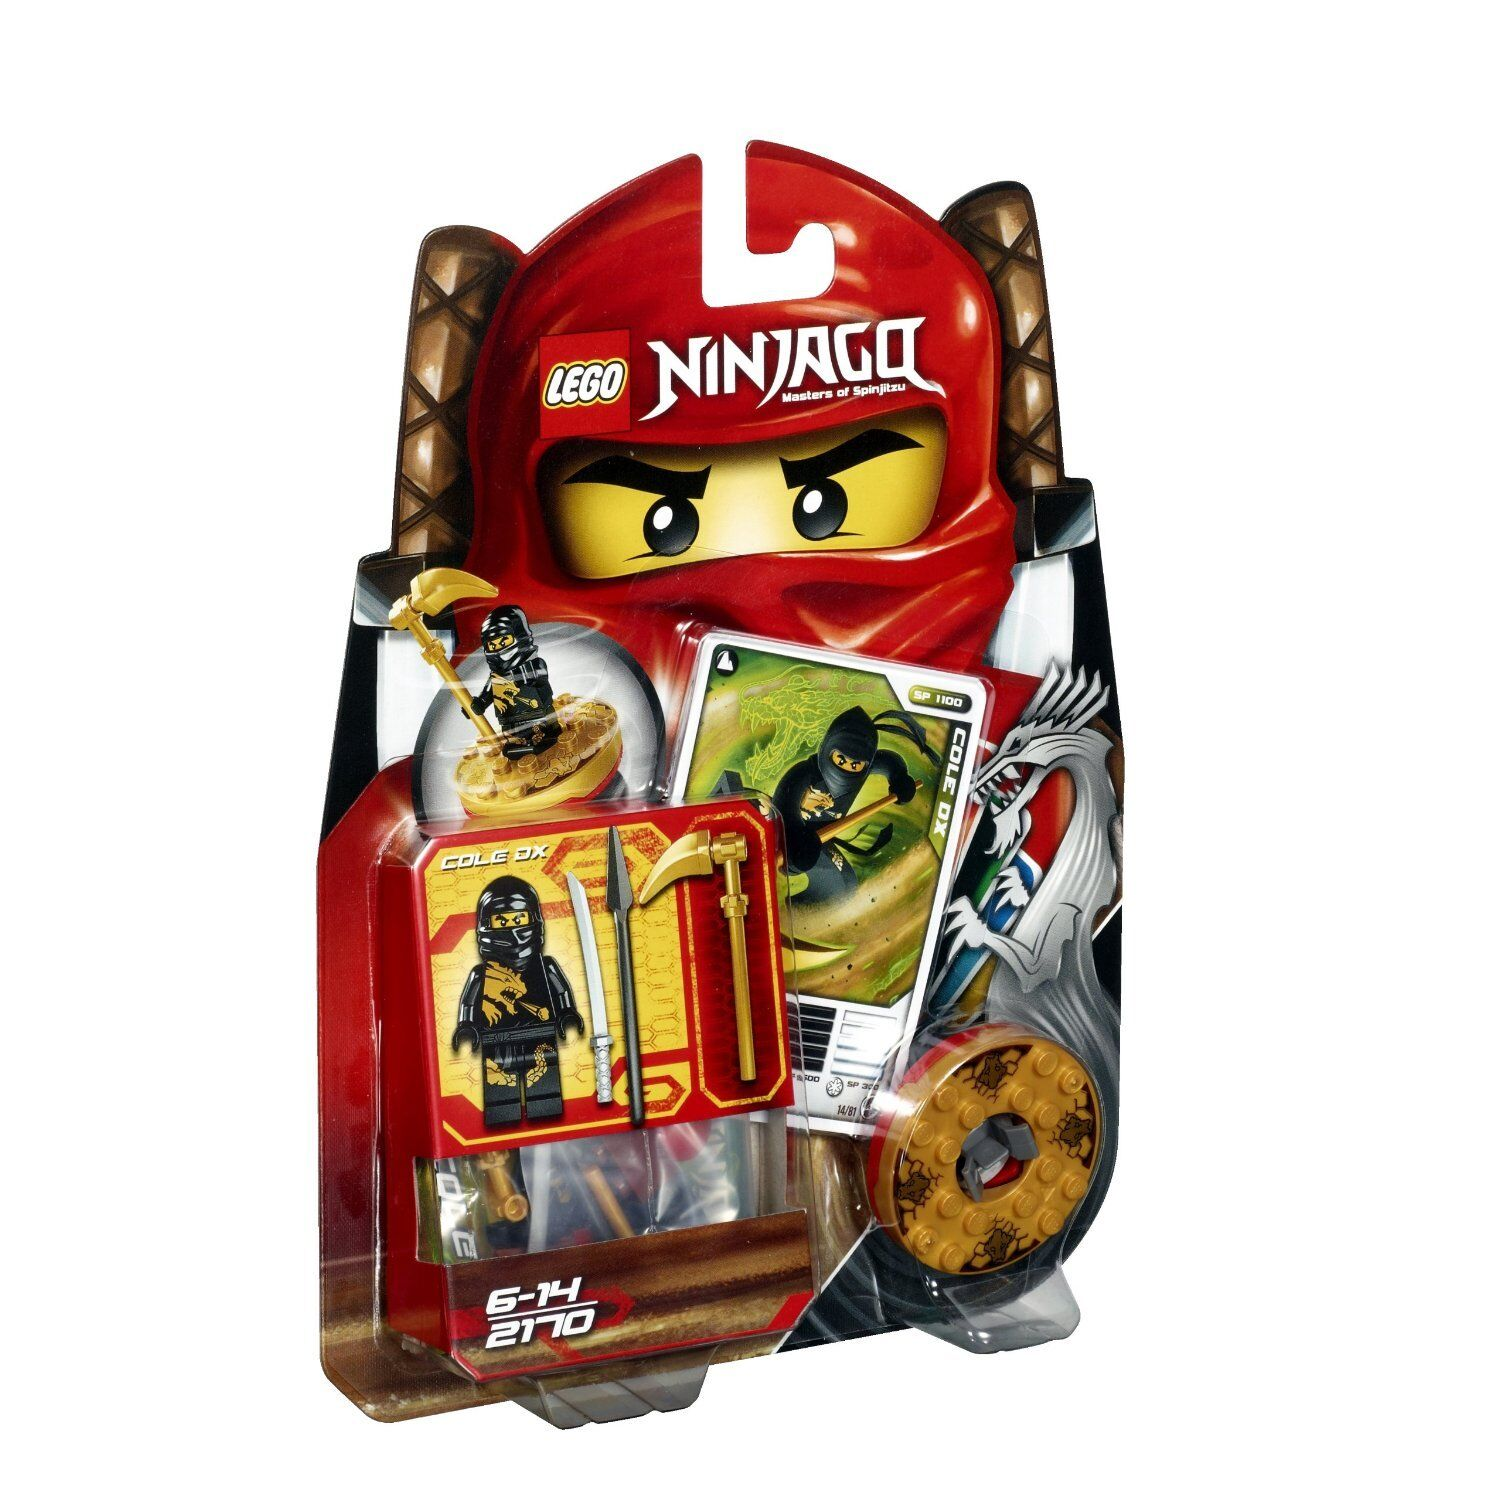 LEGO Ninjago 2170 Cole DX blacker Ninja Spinjitzu Spinner Figur